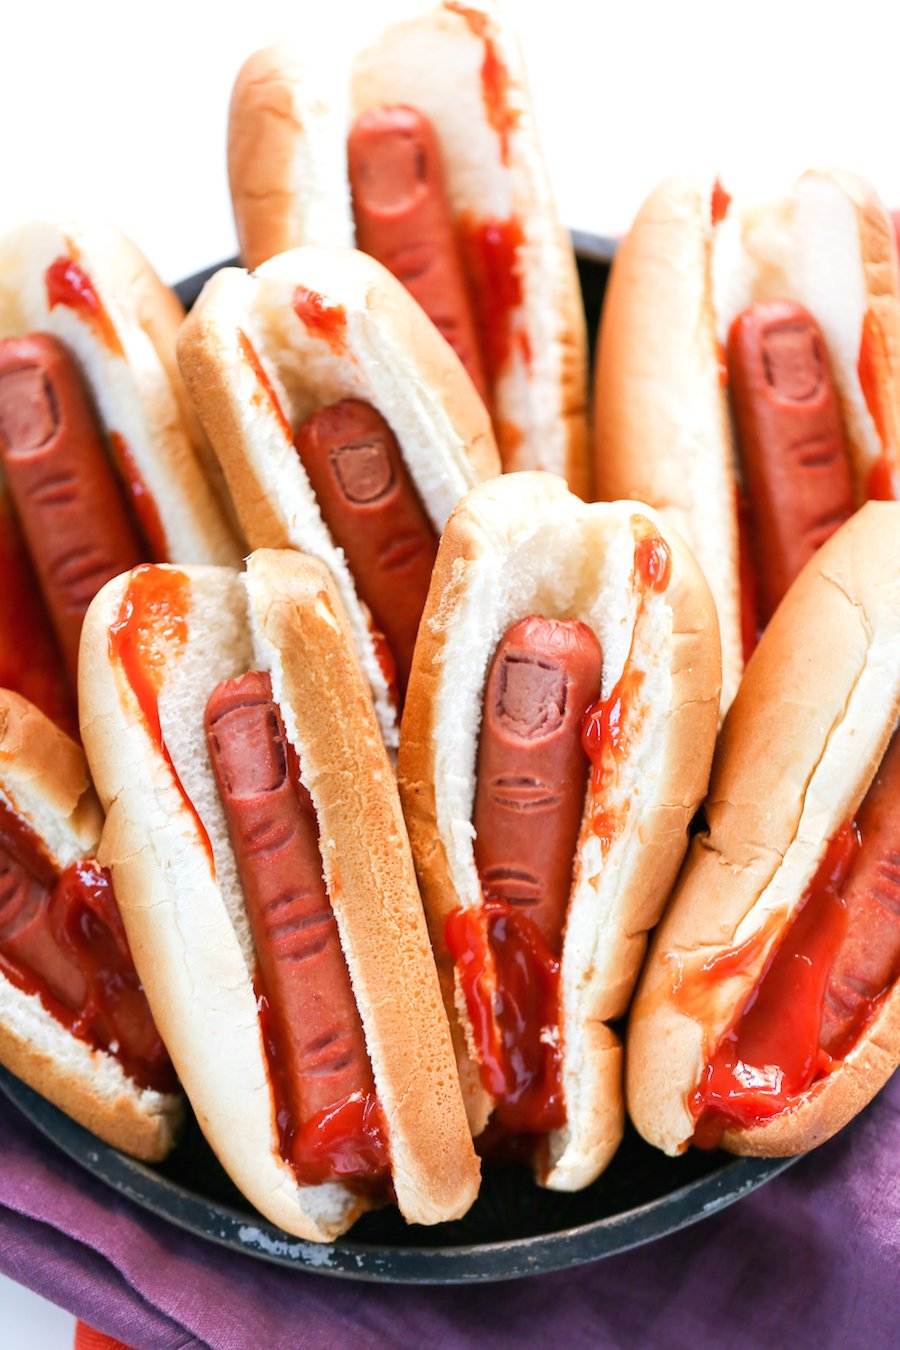 Severed Finger Hot Dogs